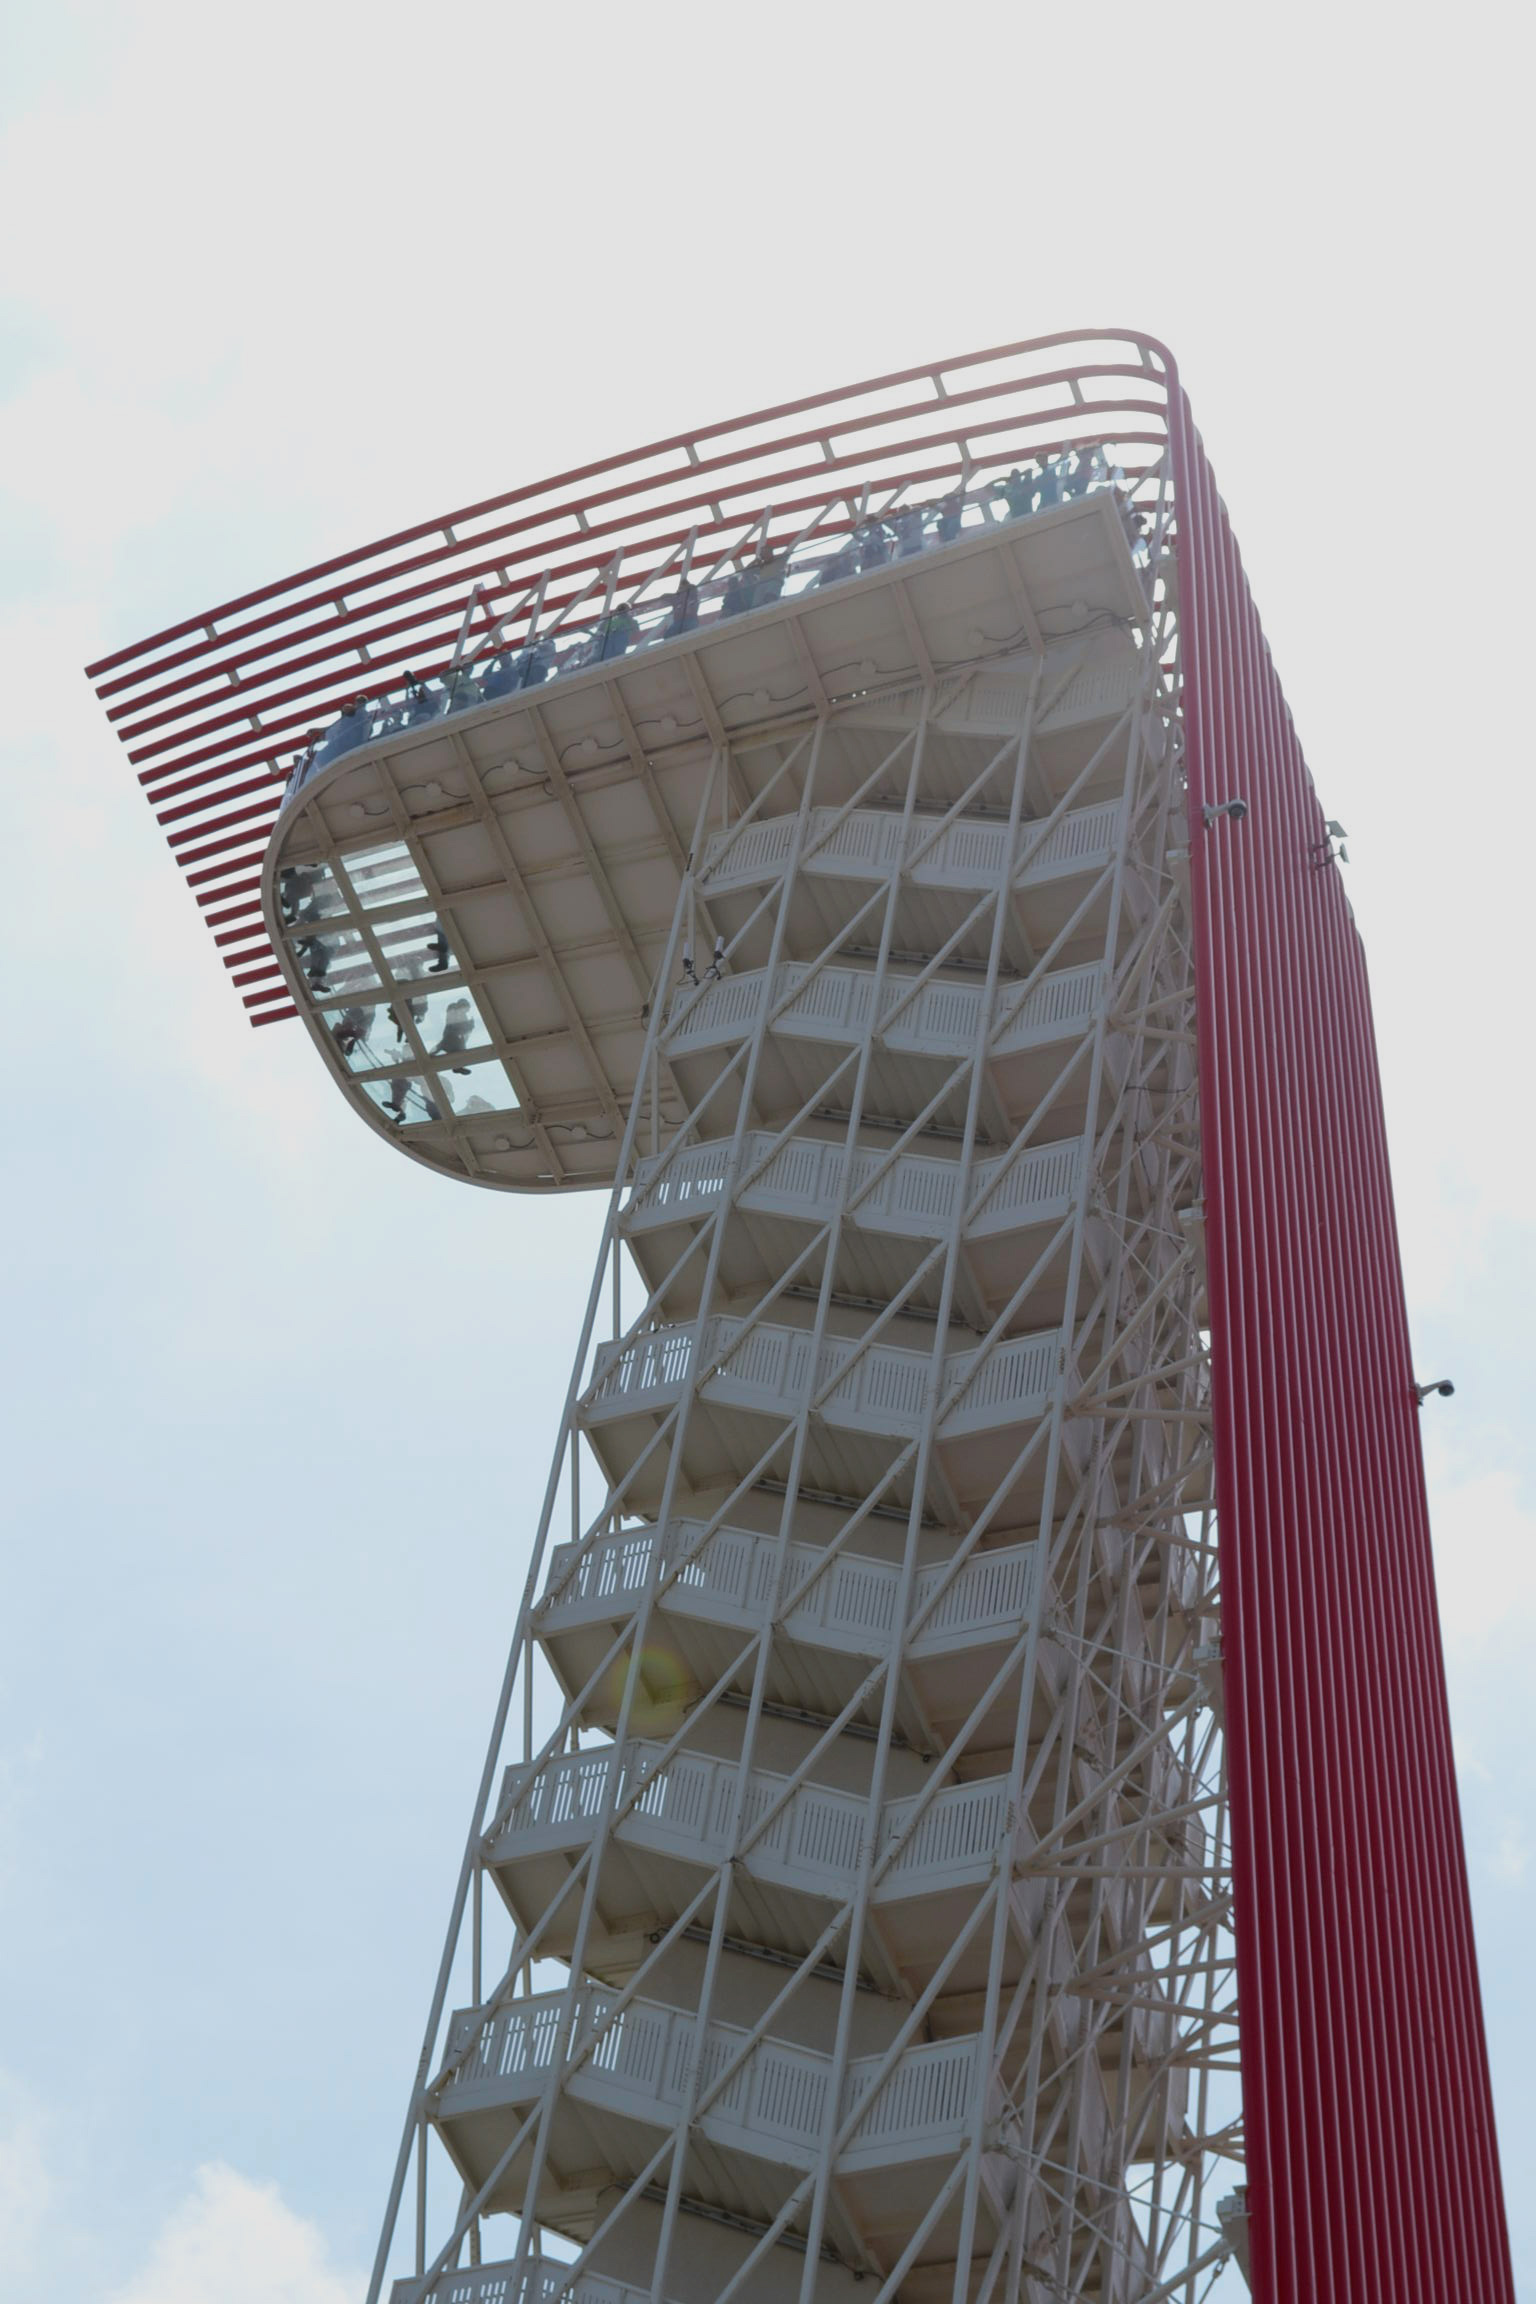 The tower stands 251 feet in the air.